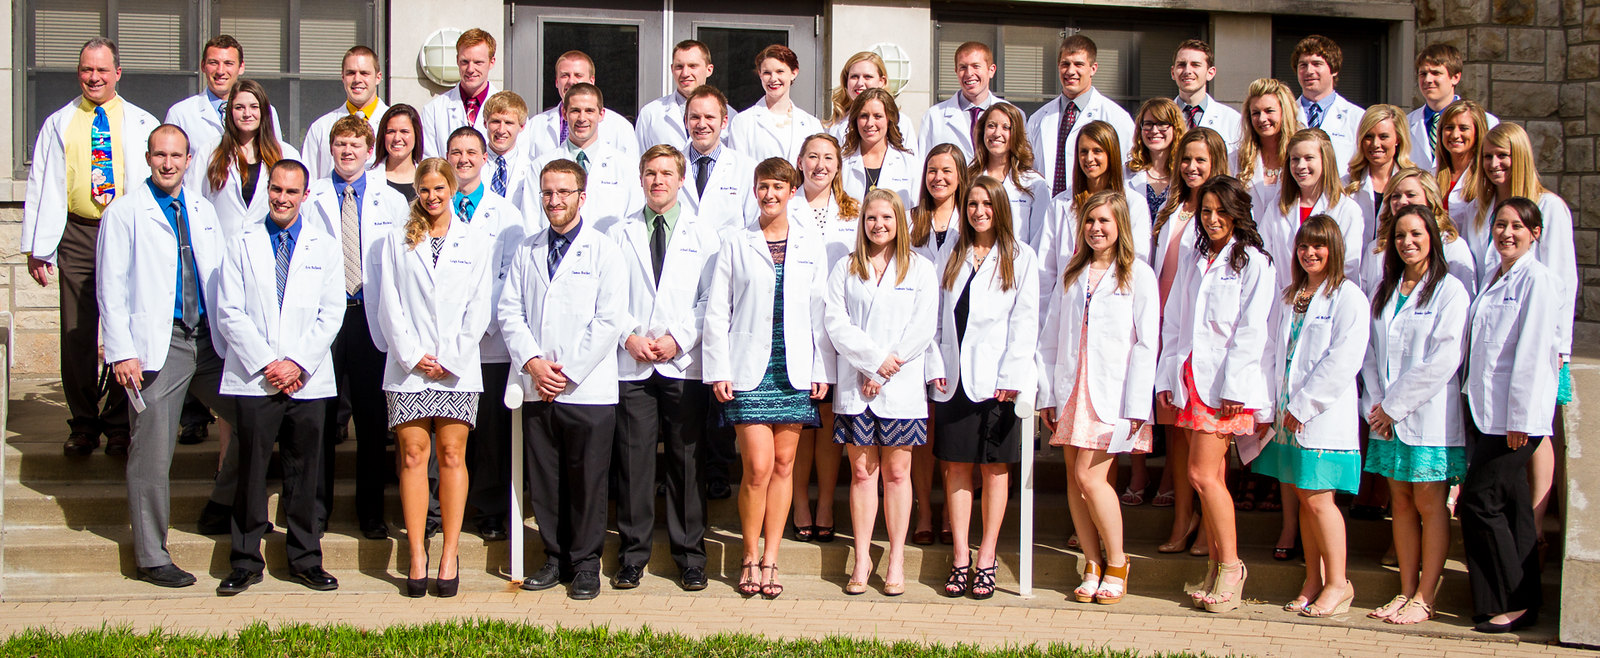 Rockhurst White Coat Ceremony